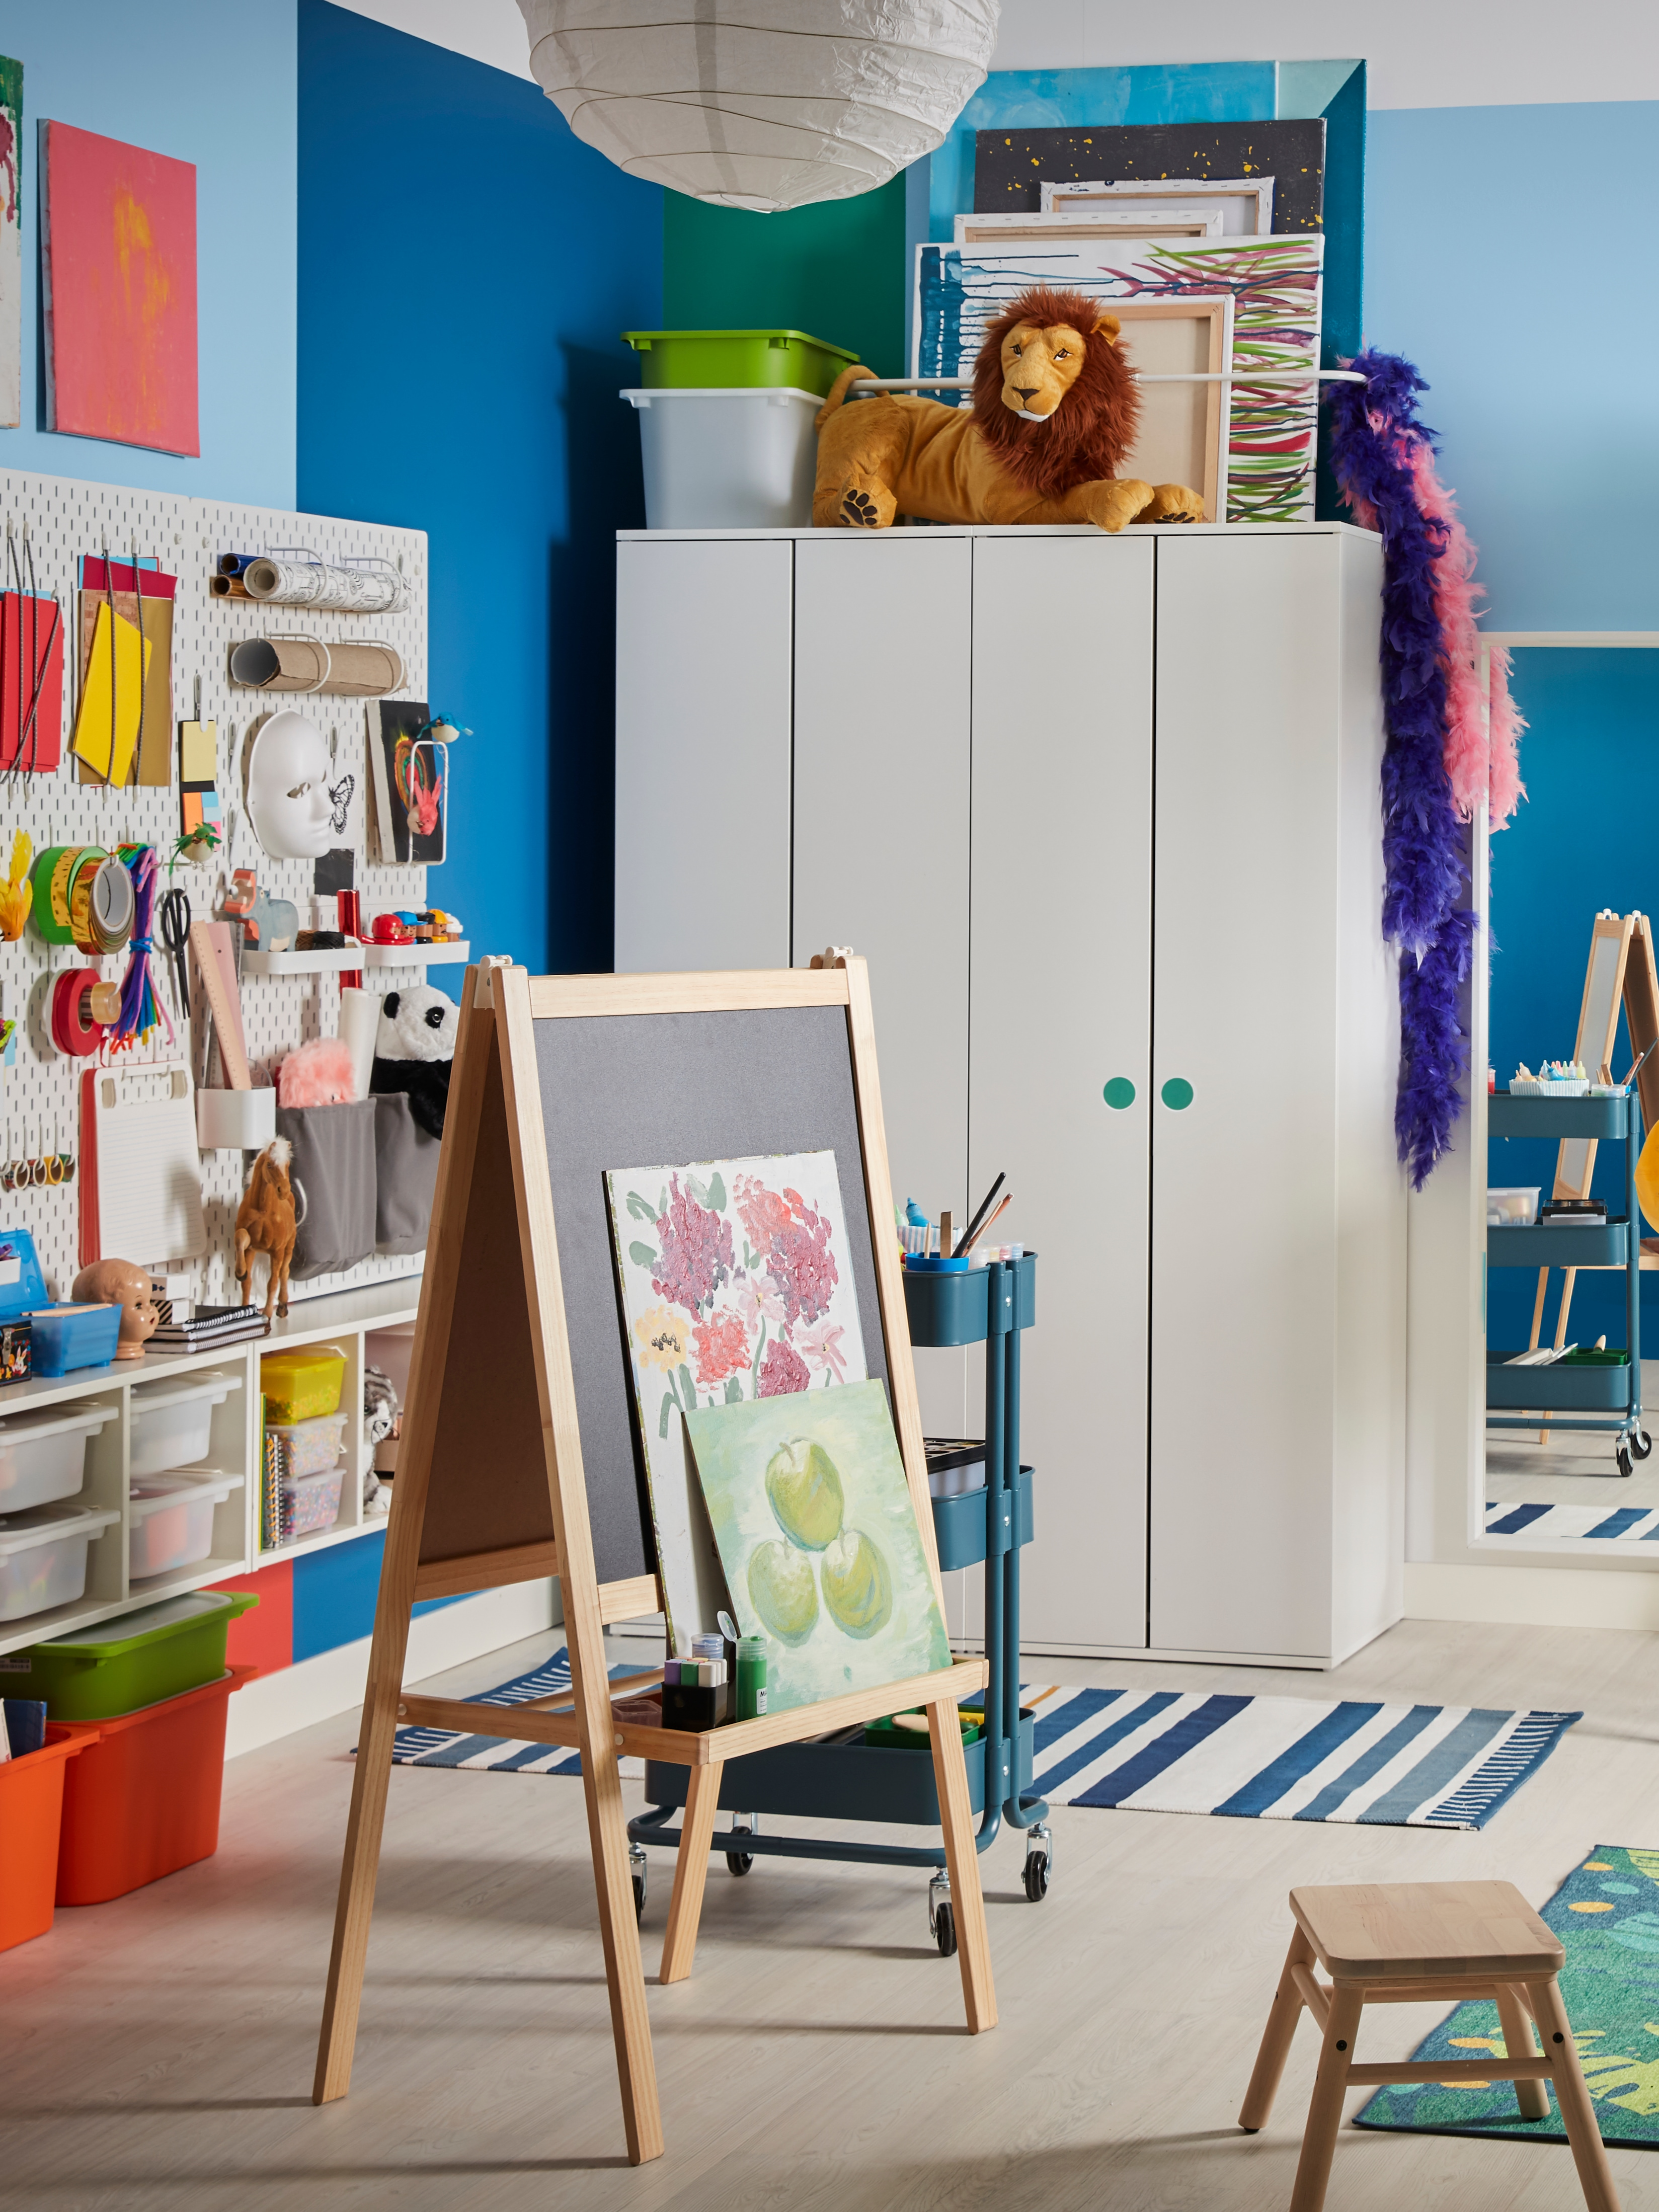 A children's room with two side-by-side white GODISHUS wardrobes and an easel by a pegboard wall of arts and crafts supplies.